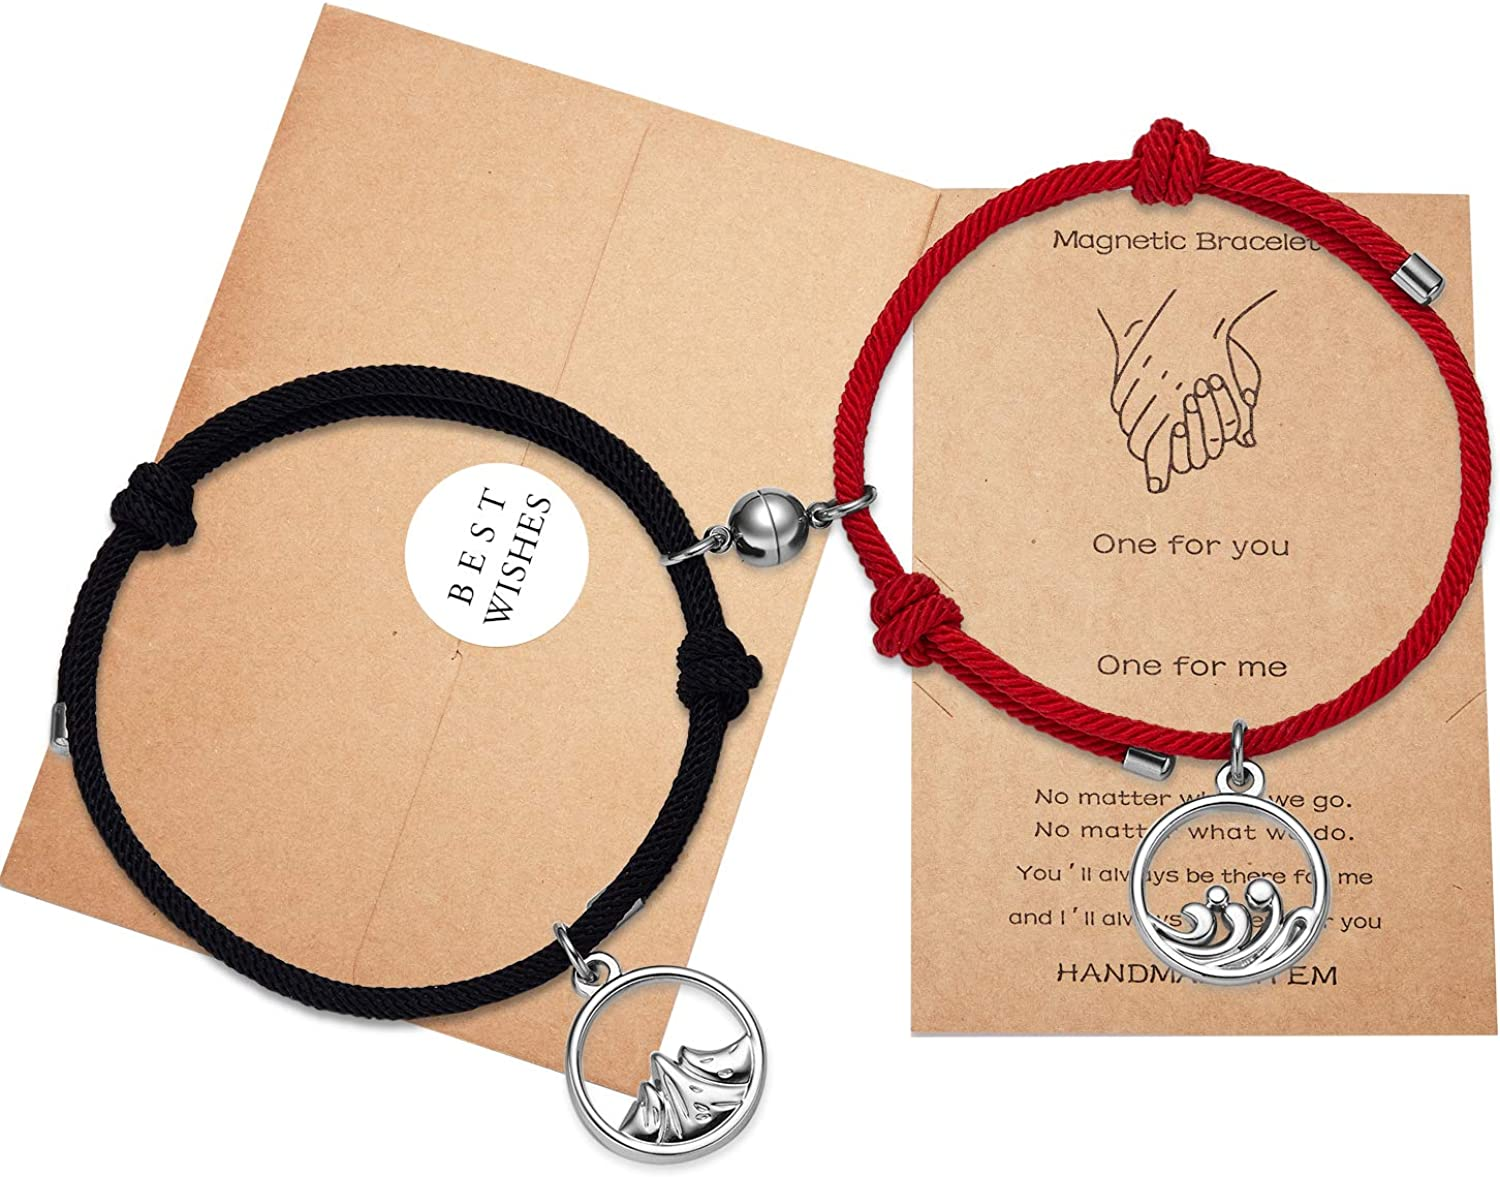 Ldurian Magnetic Spring new work one after another depot Personalized Couple Gifts Bracelets F Valentine